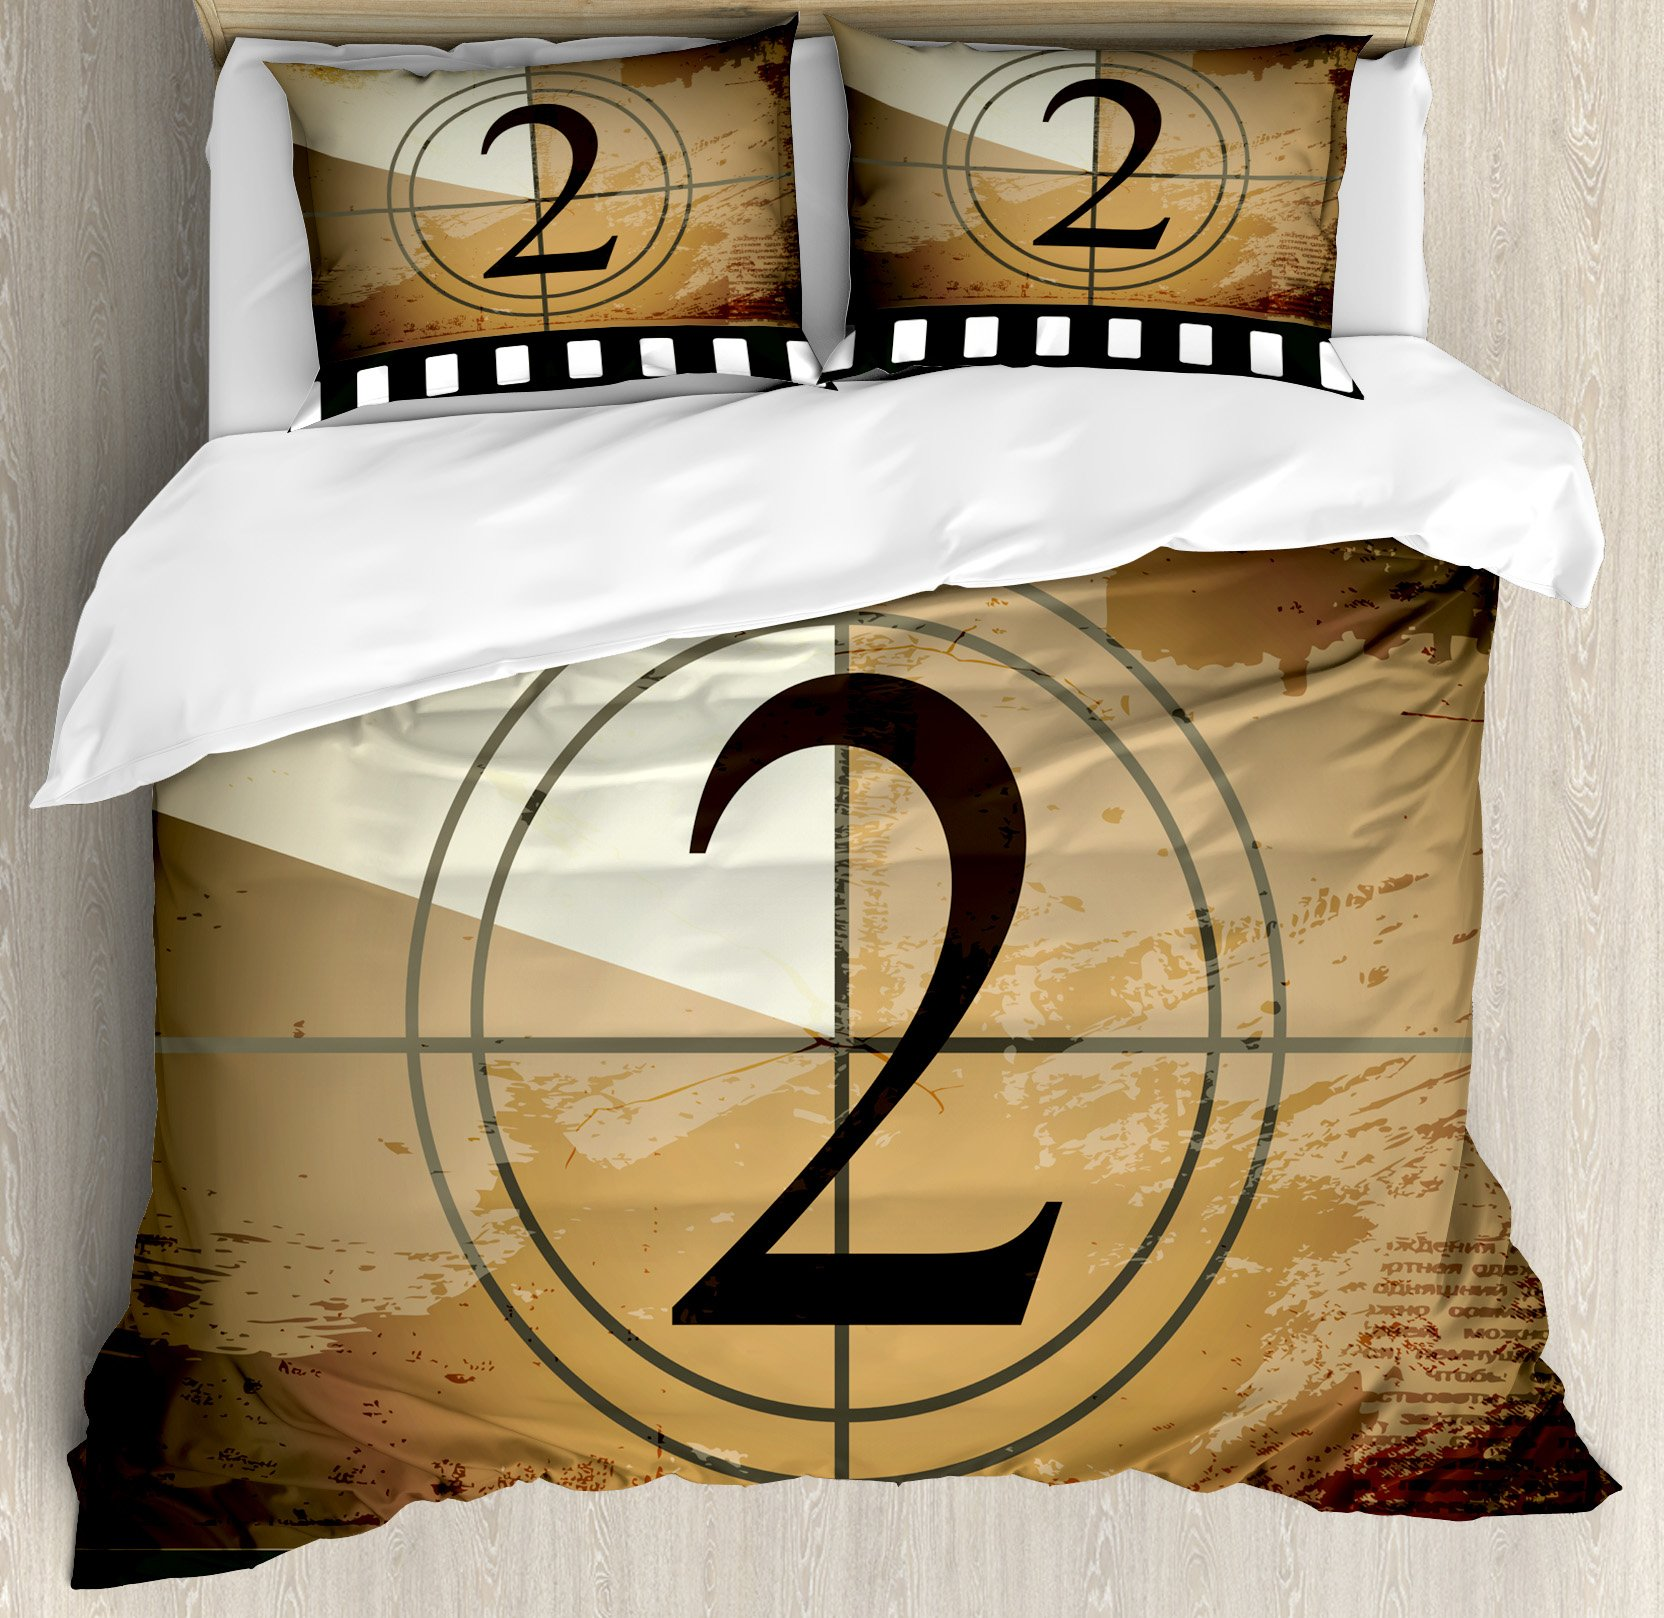 Ambesonne Movie Theater Queen Size Duvet Cover Set, Countdown Screen Illustration with Number 2 on Grunge Background, Decorative 3 Piece Bedding Set with 2 Pillow Shams, Pale Brown Black White